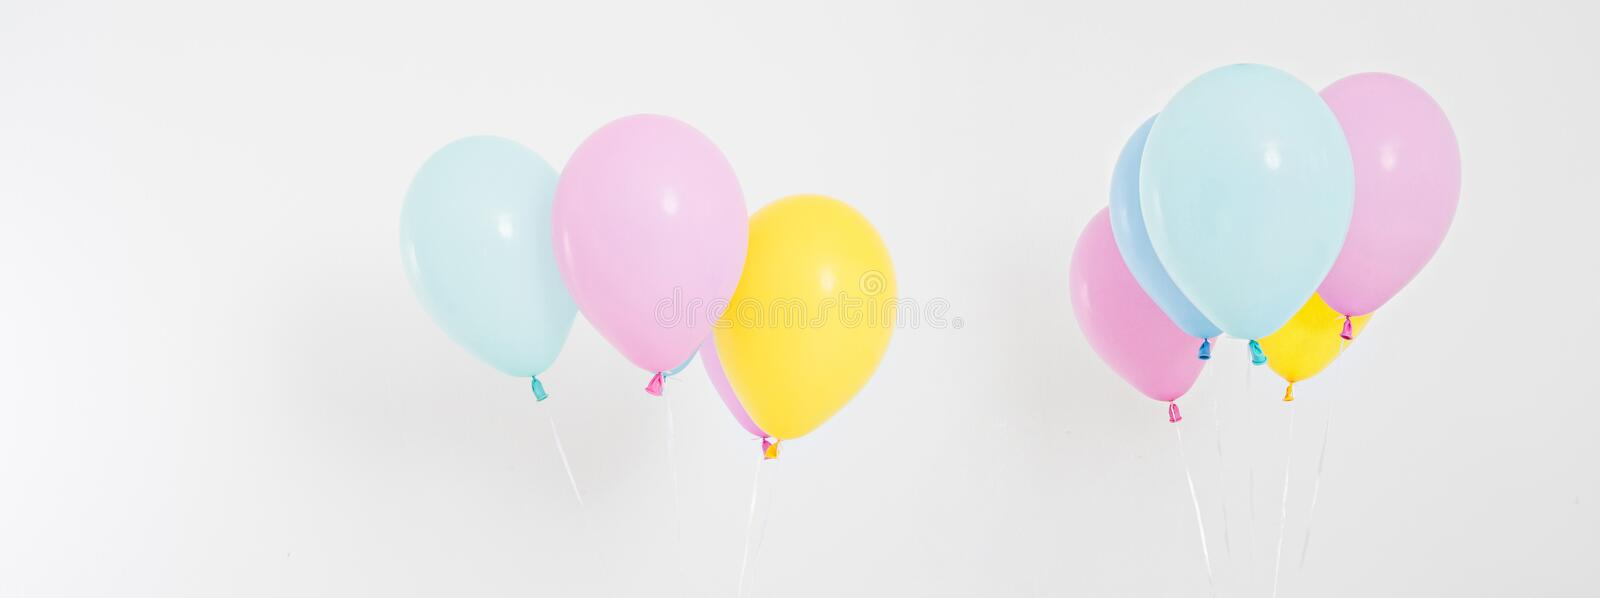 Set,collage coloured balloons background. Celebration, holidays, summer concept. Design template, billboard or banner blank royalty free stock images